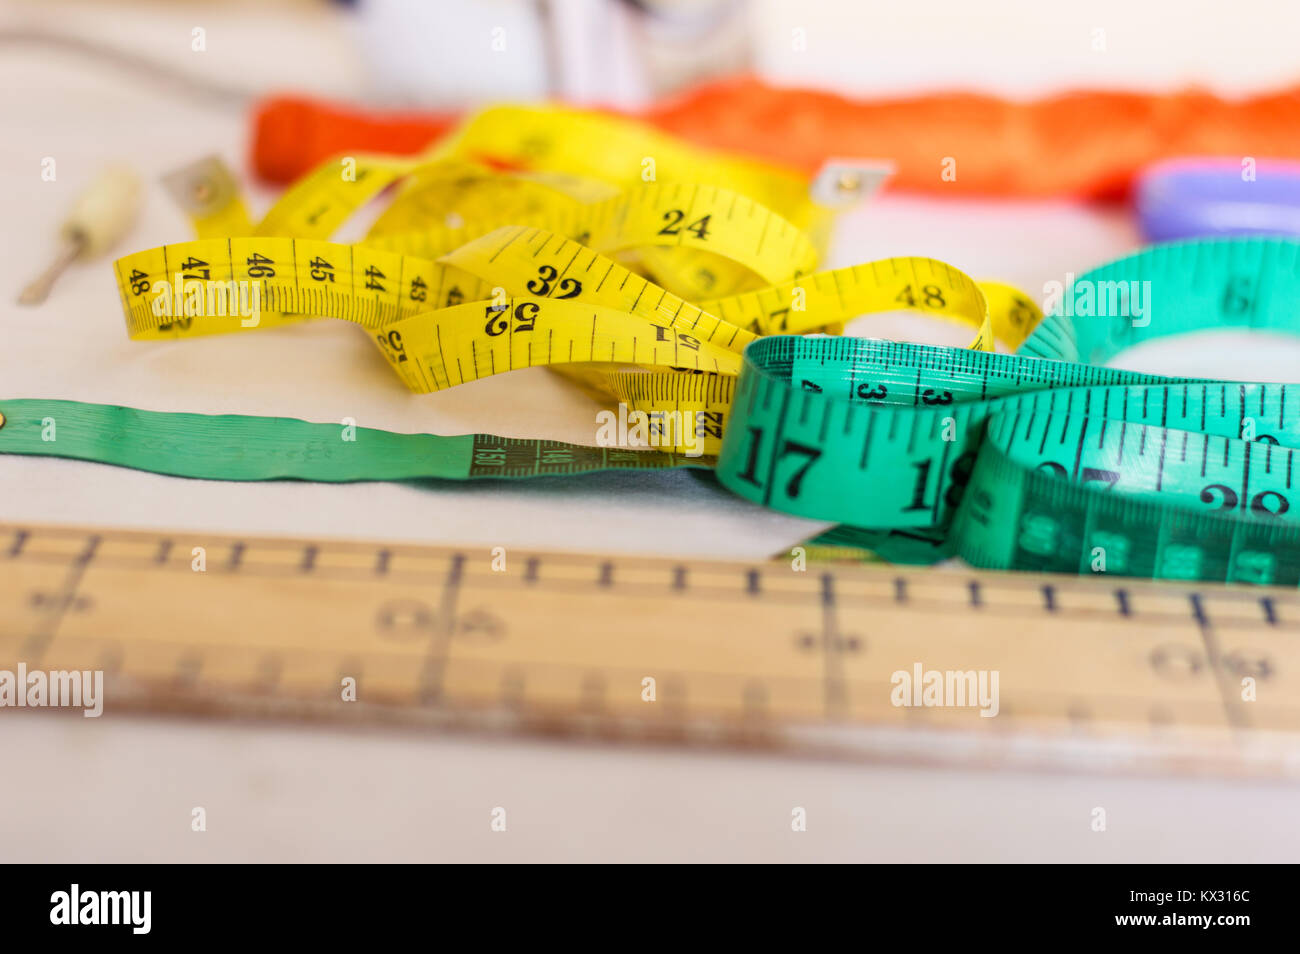 Ribbon meters, a screwdriver and a ruler arranged on a table in a sewing workshop. - Stock Image